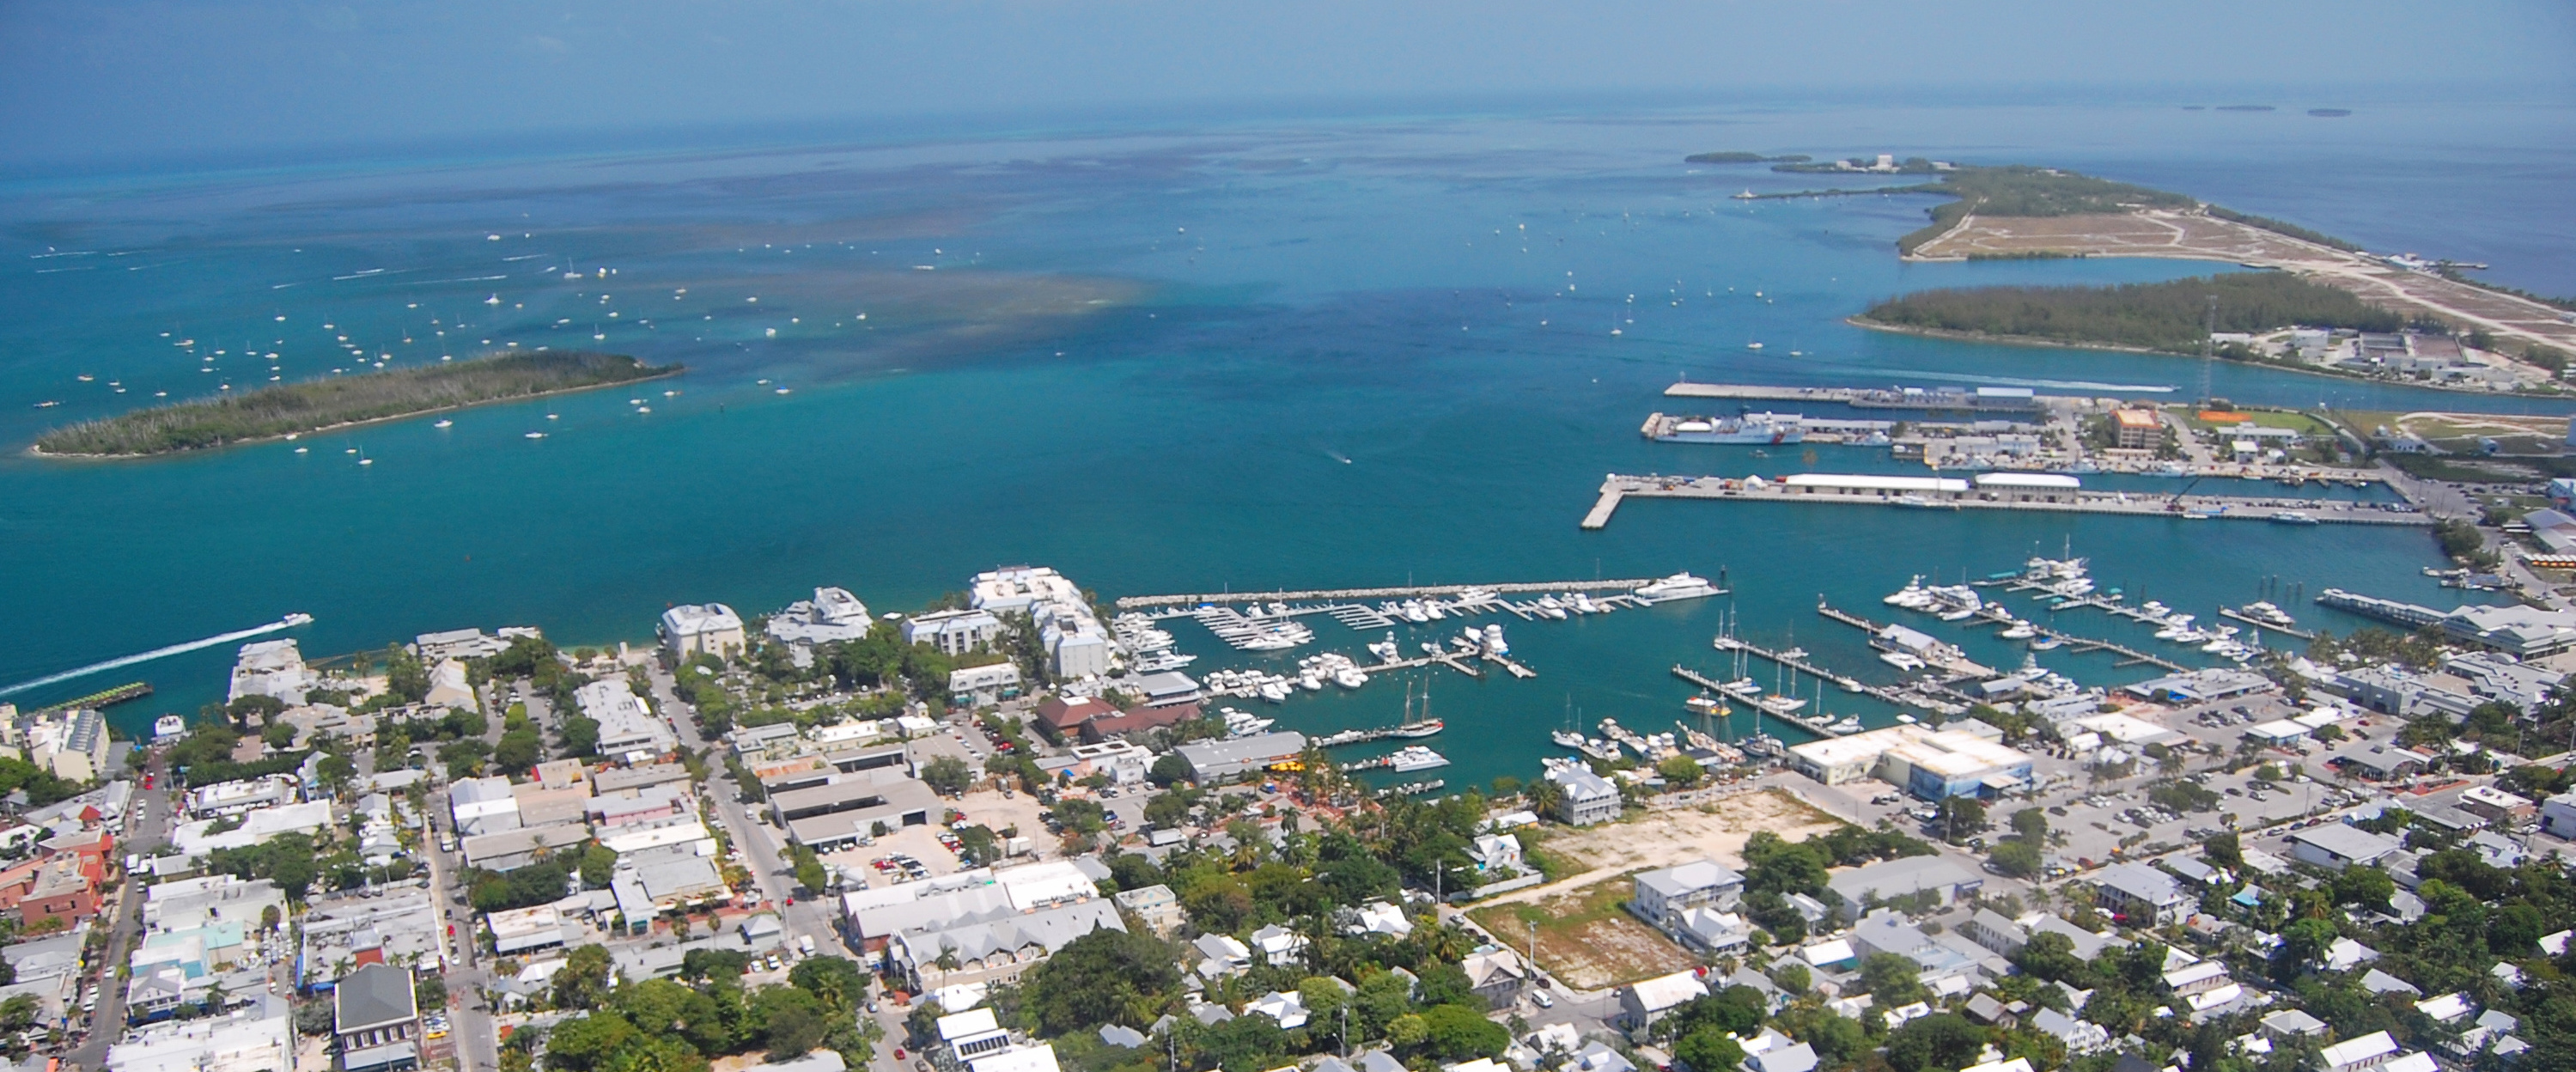 Aerial view over Key West looking north with Duval Street and the Key West Bight Marina.